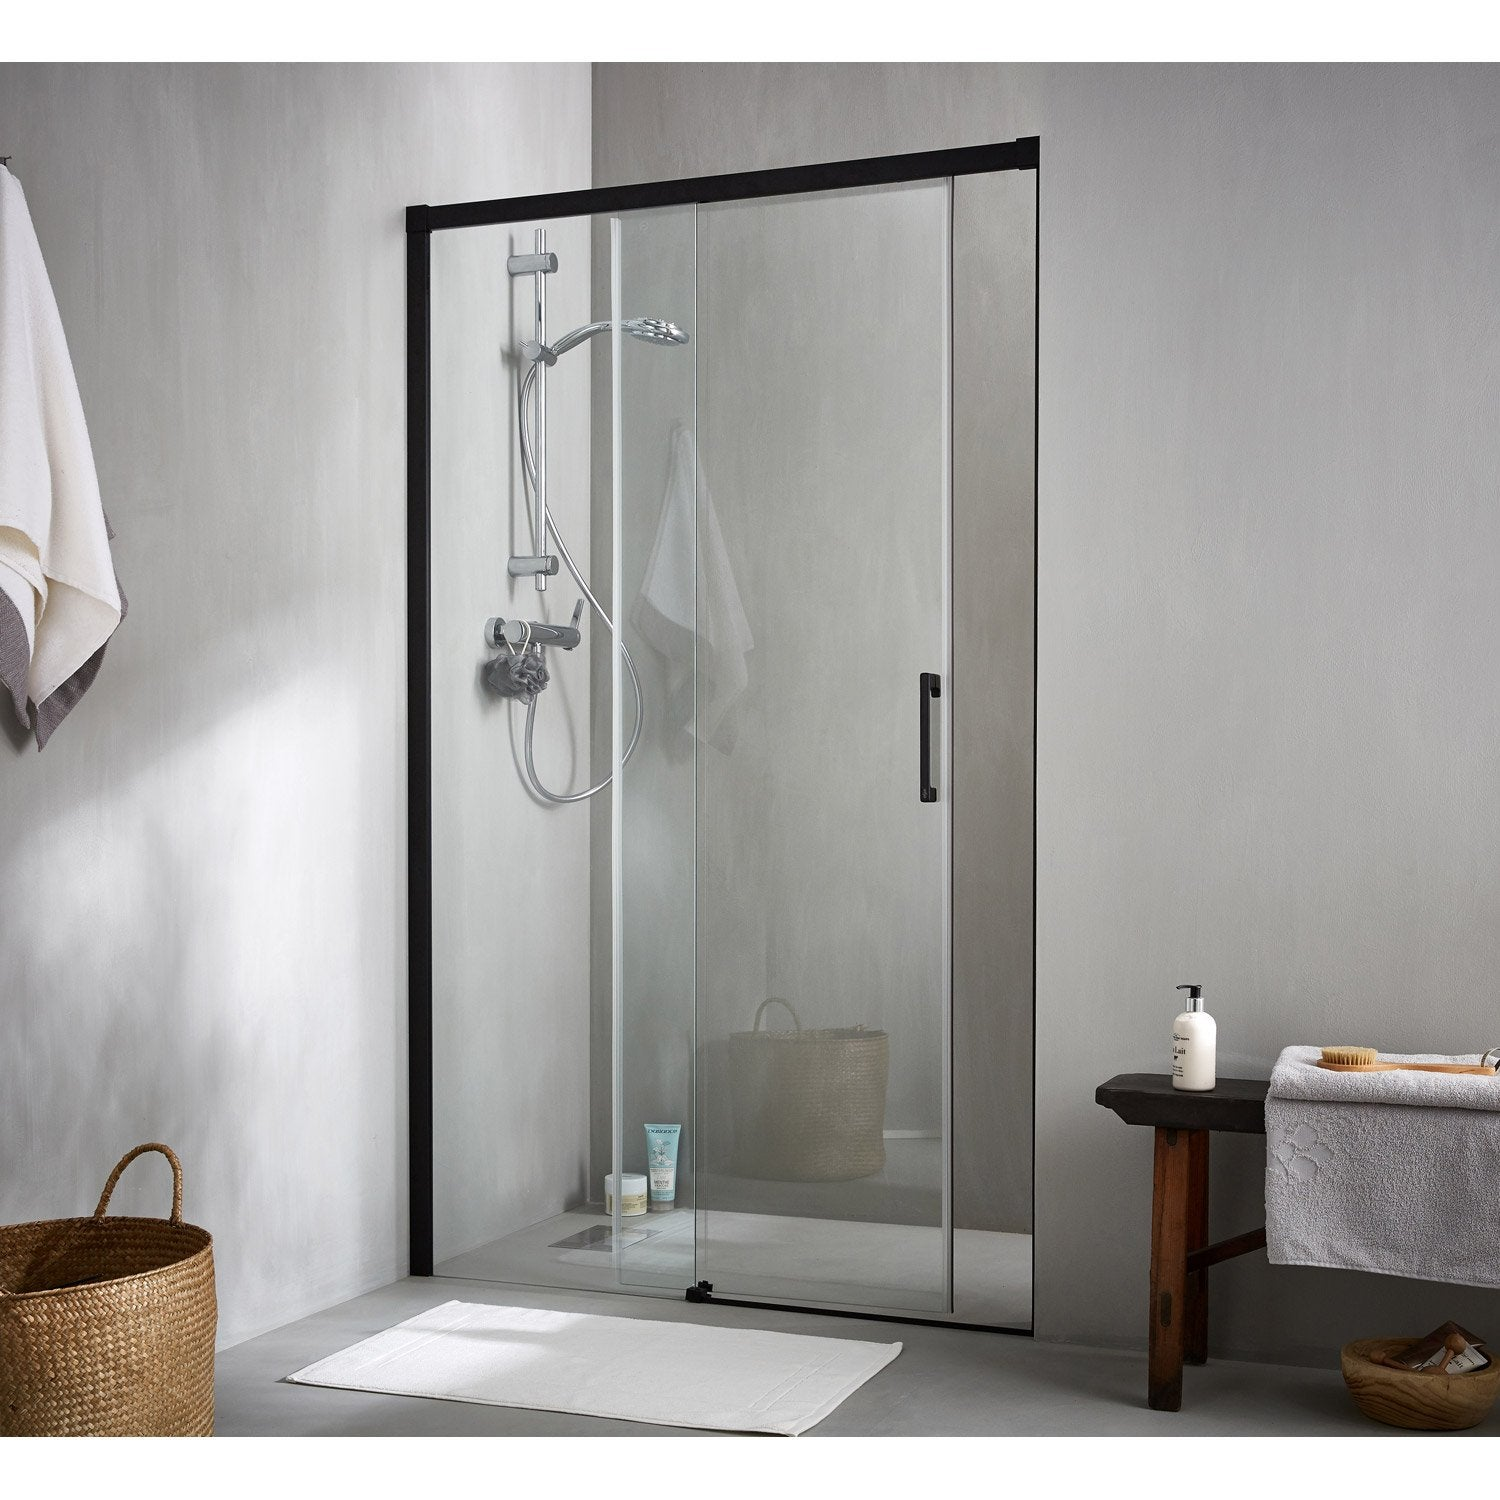 Porte de douche coulissante 120 cm transparent remix for Porte de chambre coulissante